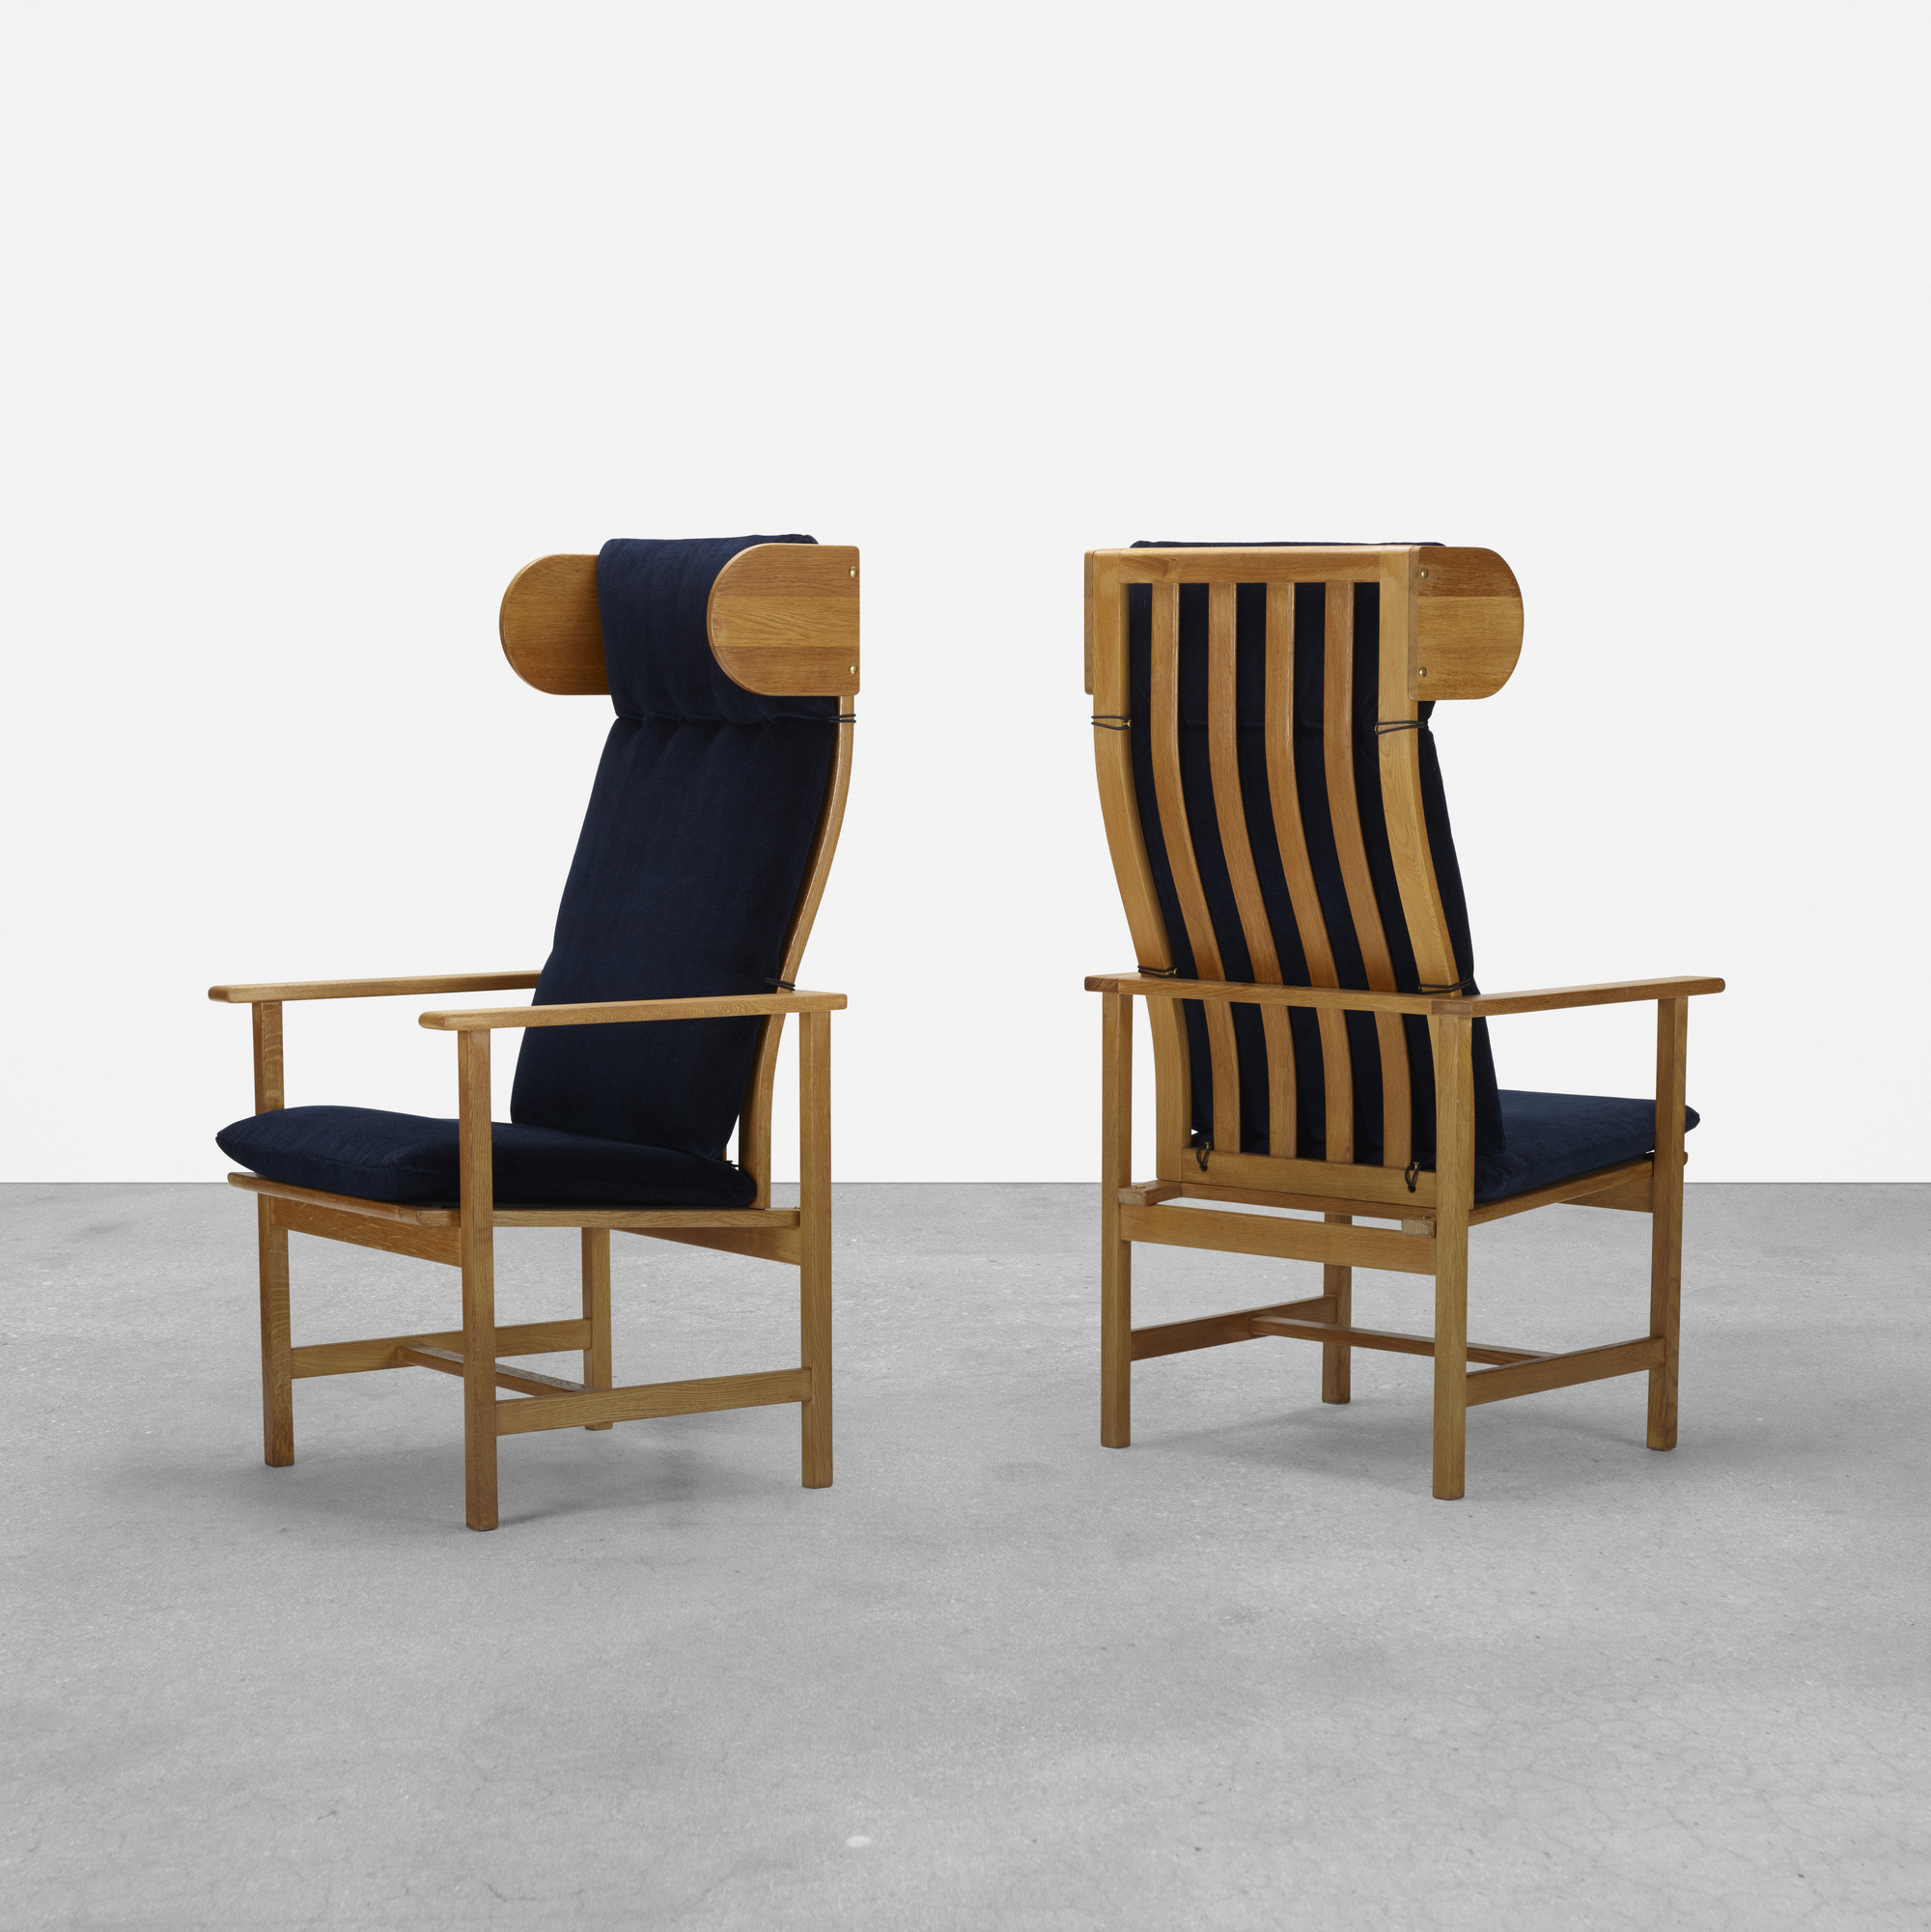 370: Børge Mogensen / armchairs, pair (1 of 5)